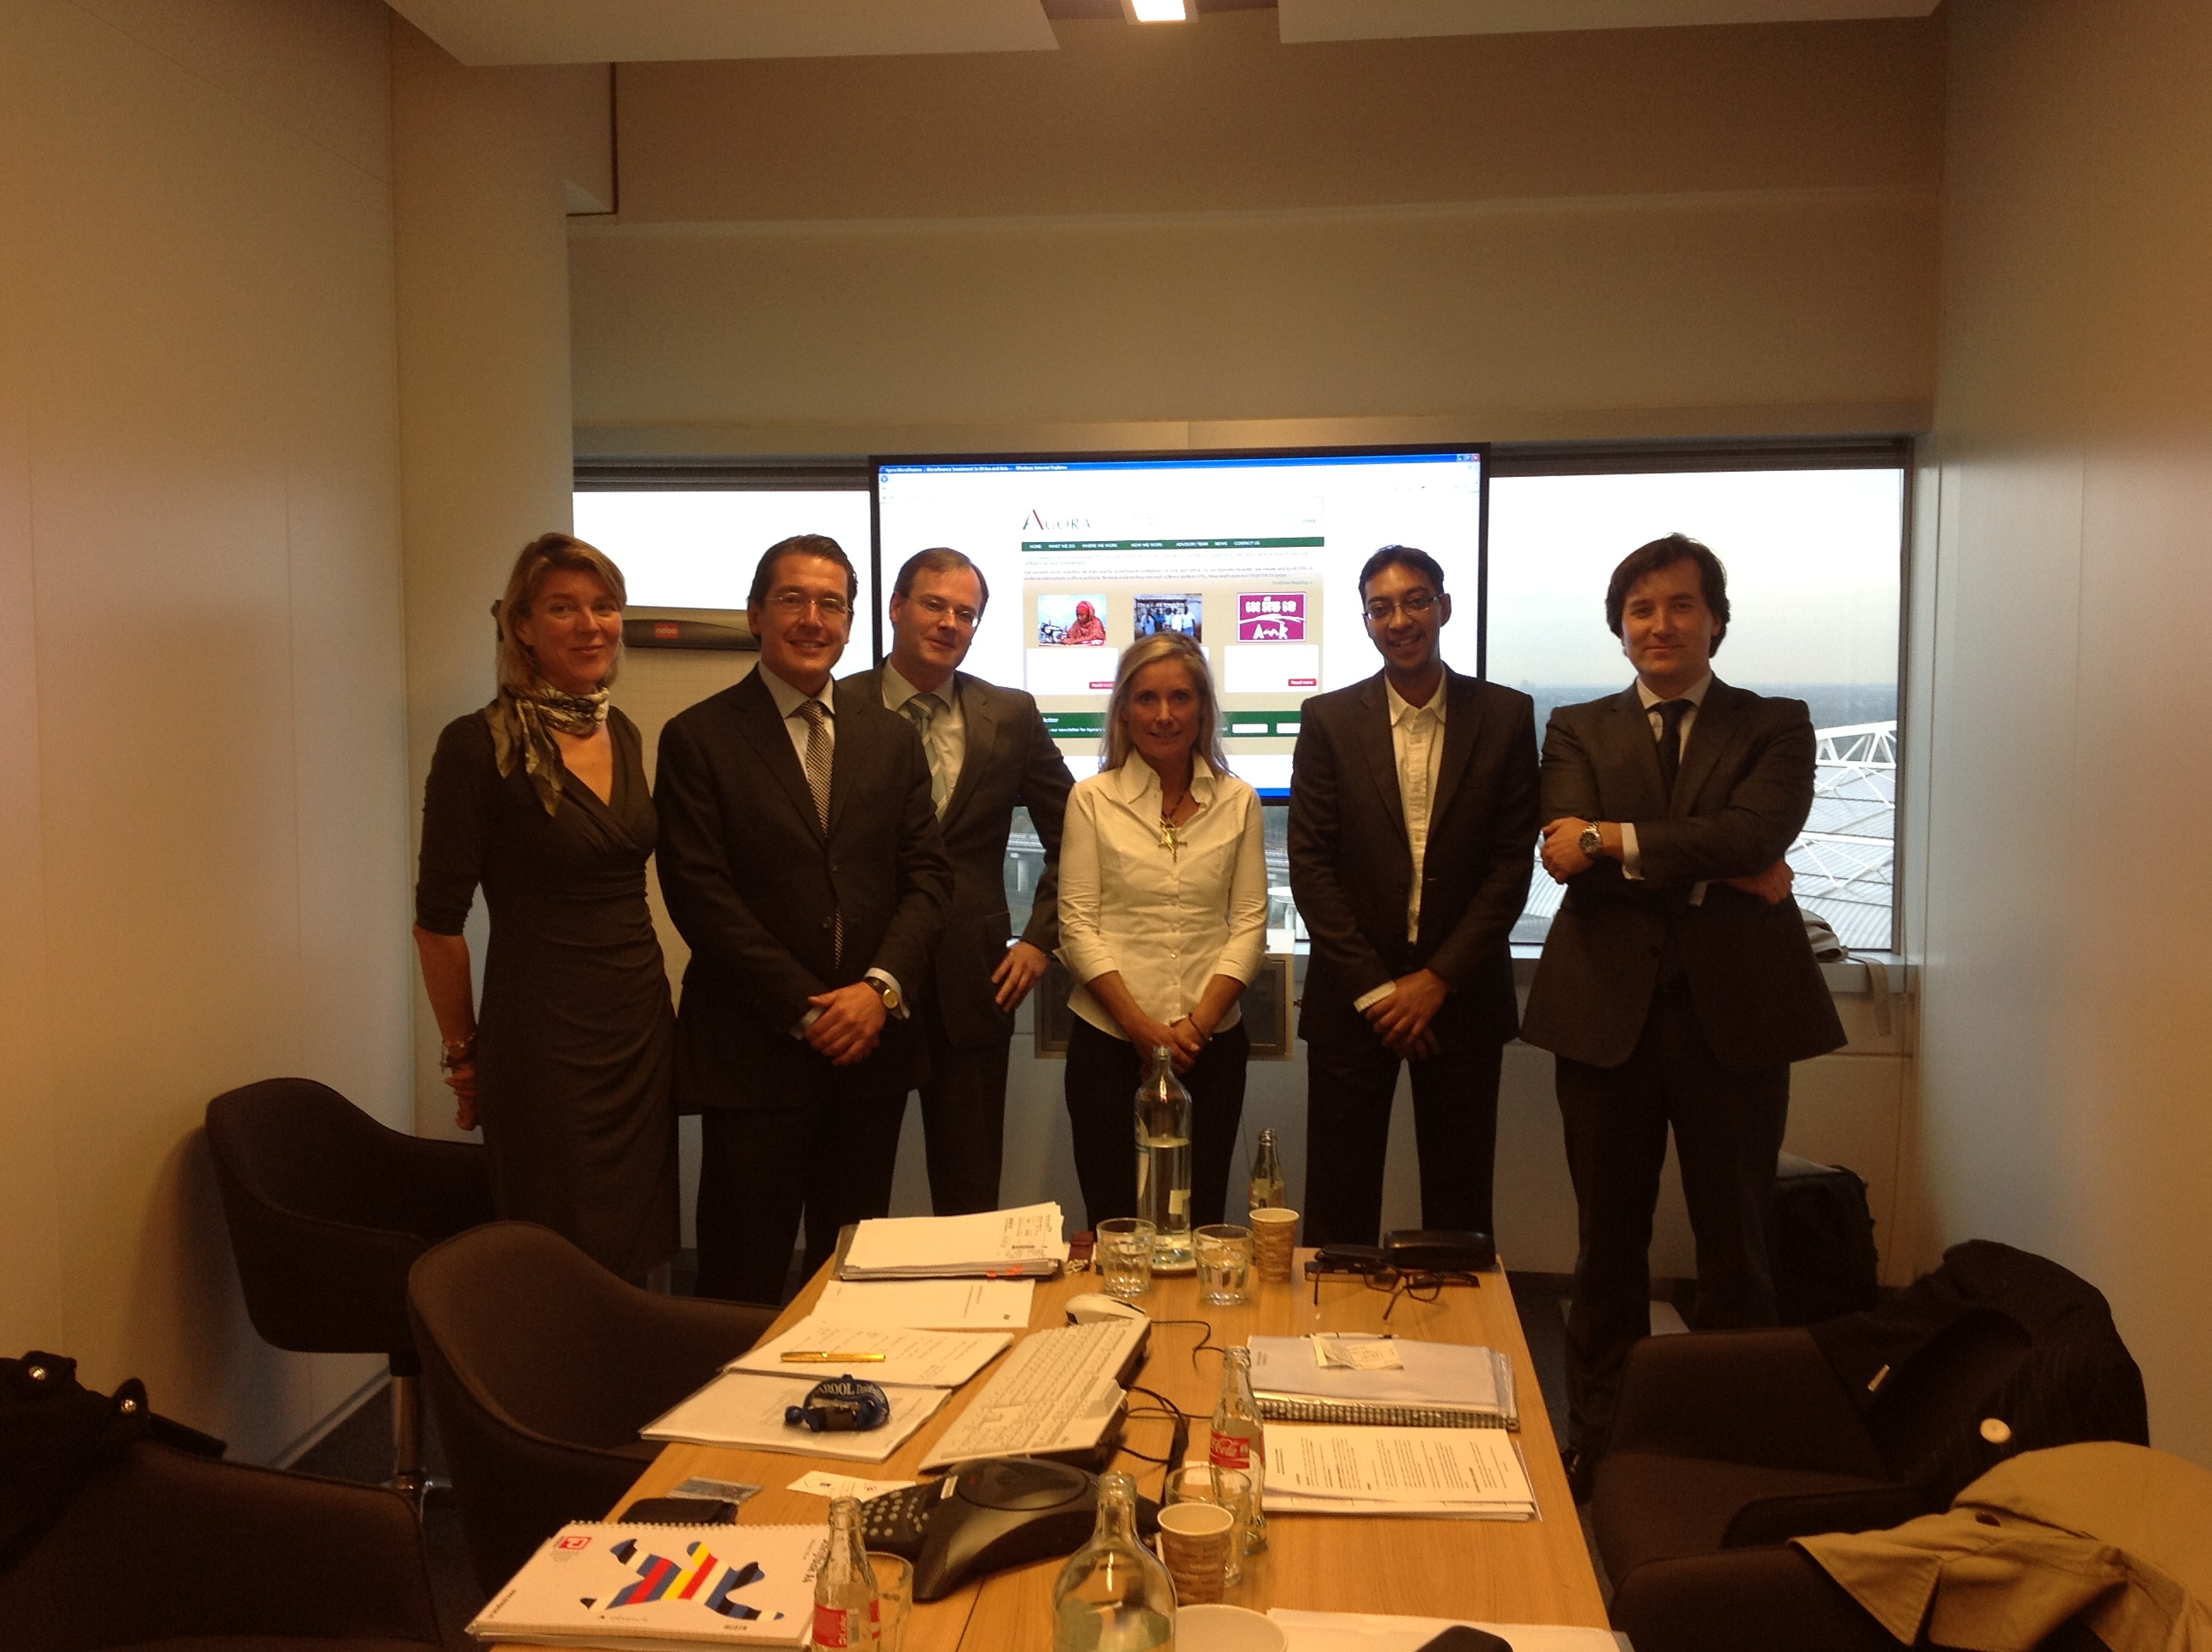 10/12 &#8212; First AGM of Agora Microfinance NV in Amsterdam